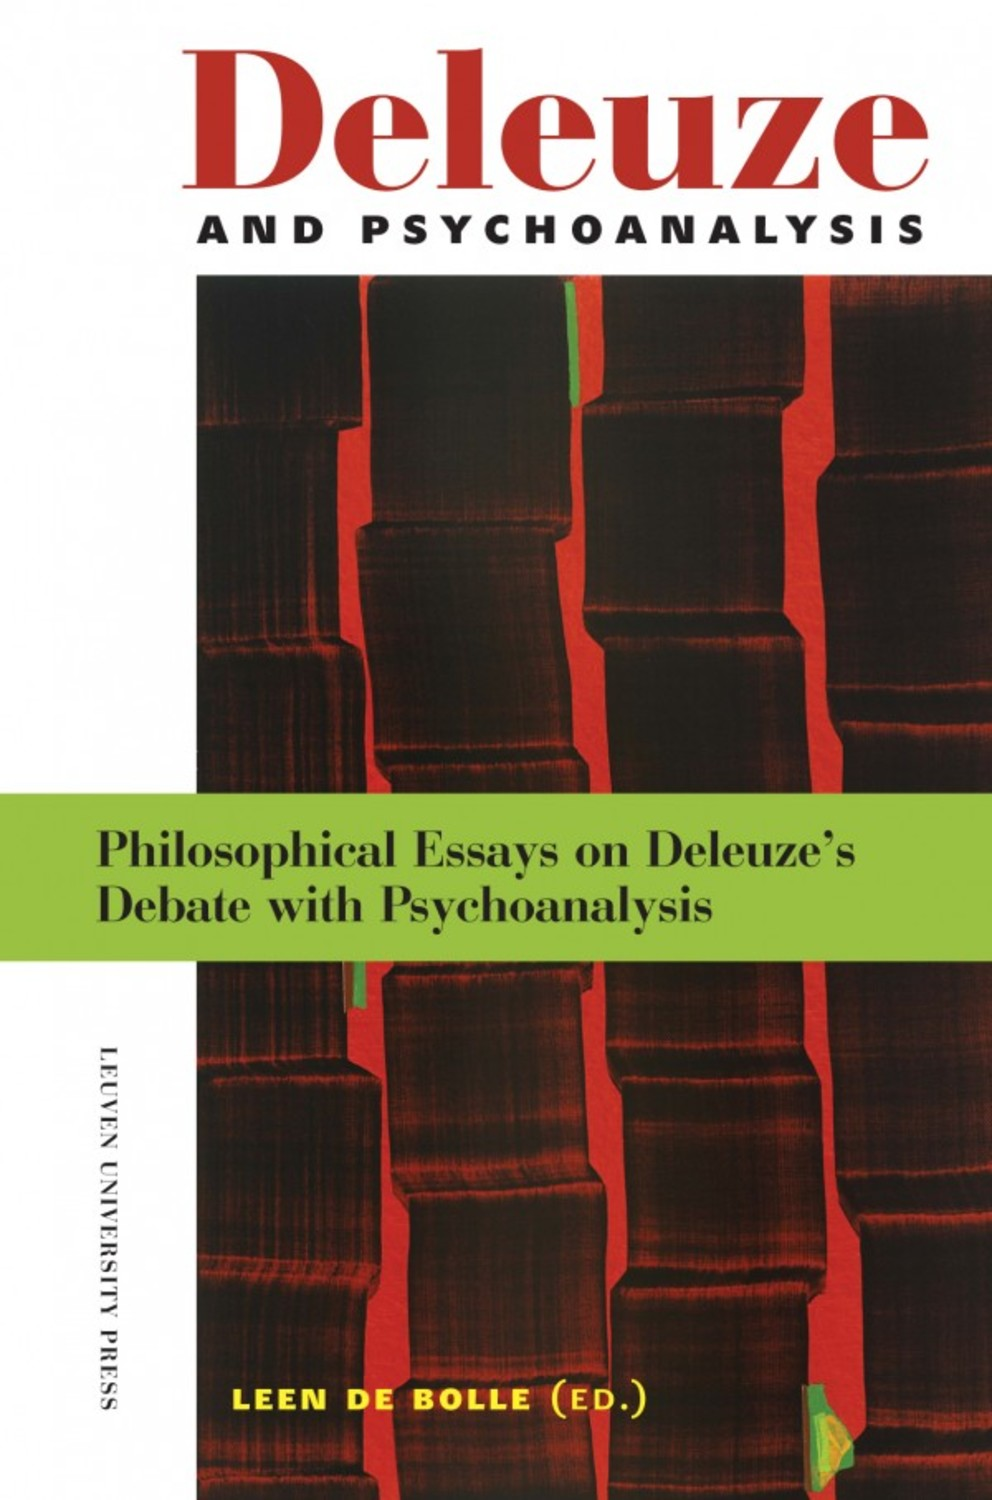 Deleuze and Psychoanalysis